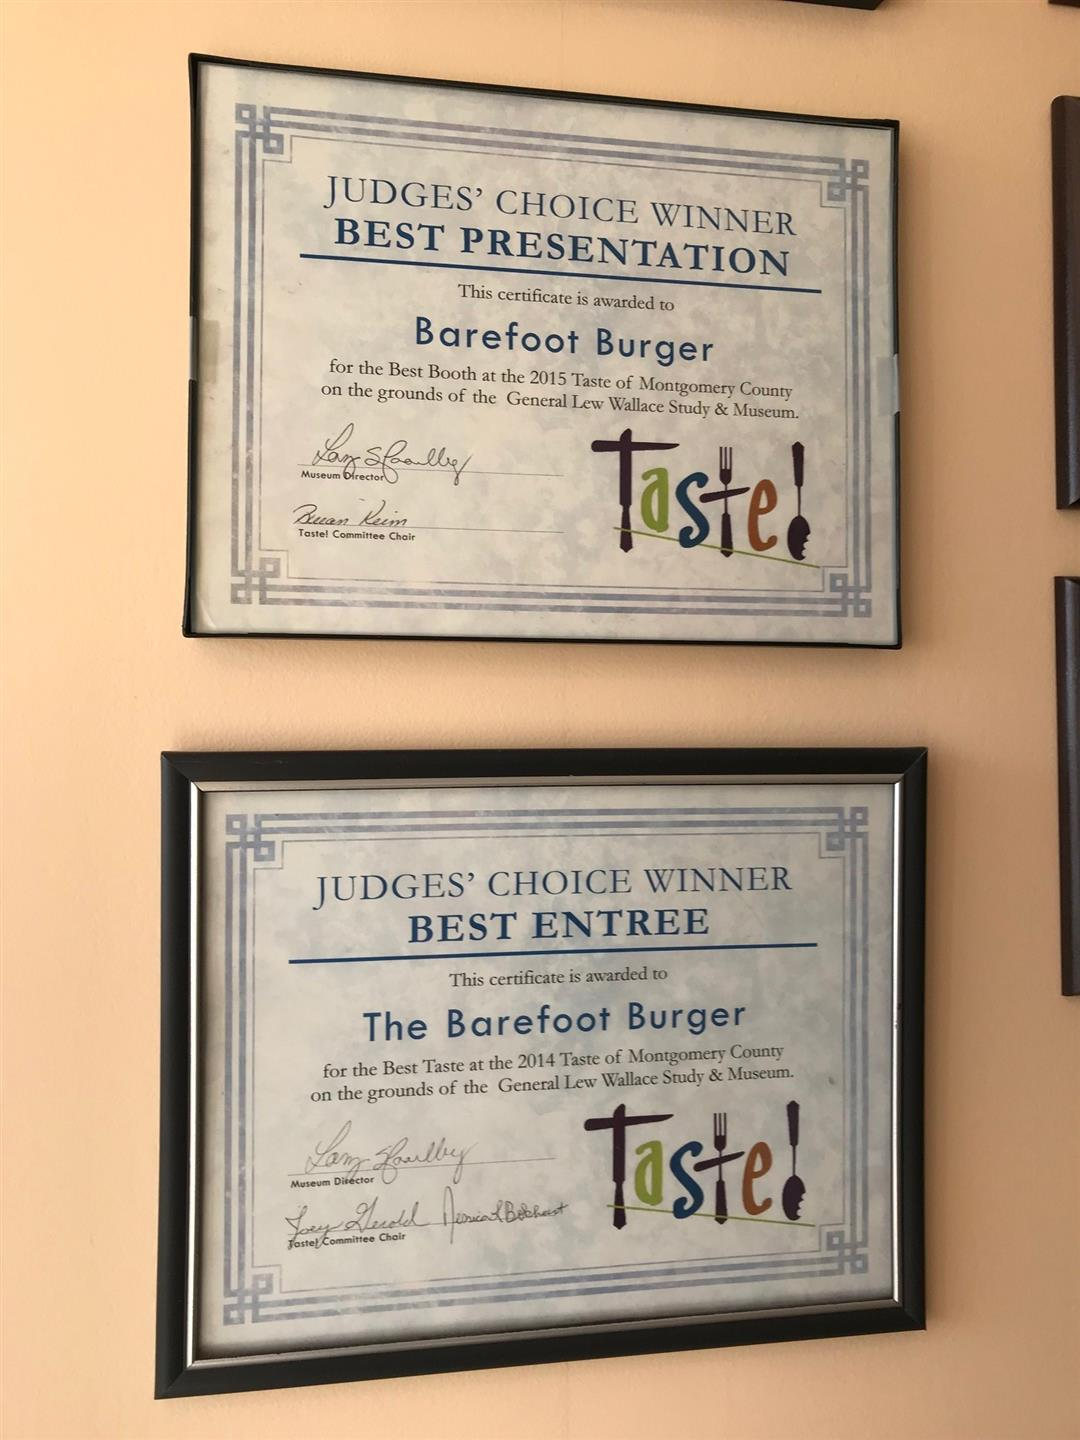 """2 Signs that say """"Judge's Choice Wnner- Best Entree: The Barefoot Burger."""" One Says: """"for the Best Taste at the 2014 Taste of Montgomery County on the grounds of the General Lew Wallace Study & Museum."""" & The other says: for the Best Booth at the 2015 Taste of Montgomery County on the grounds of the General Lew Wallace Study & Museum."""""""